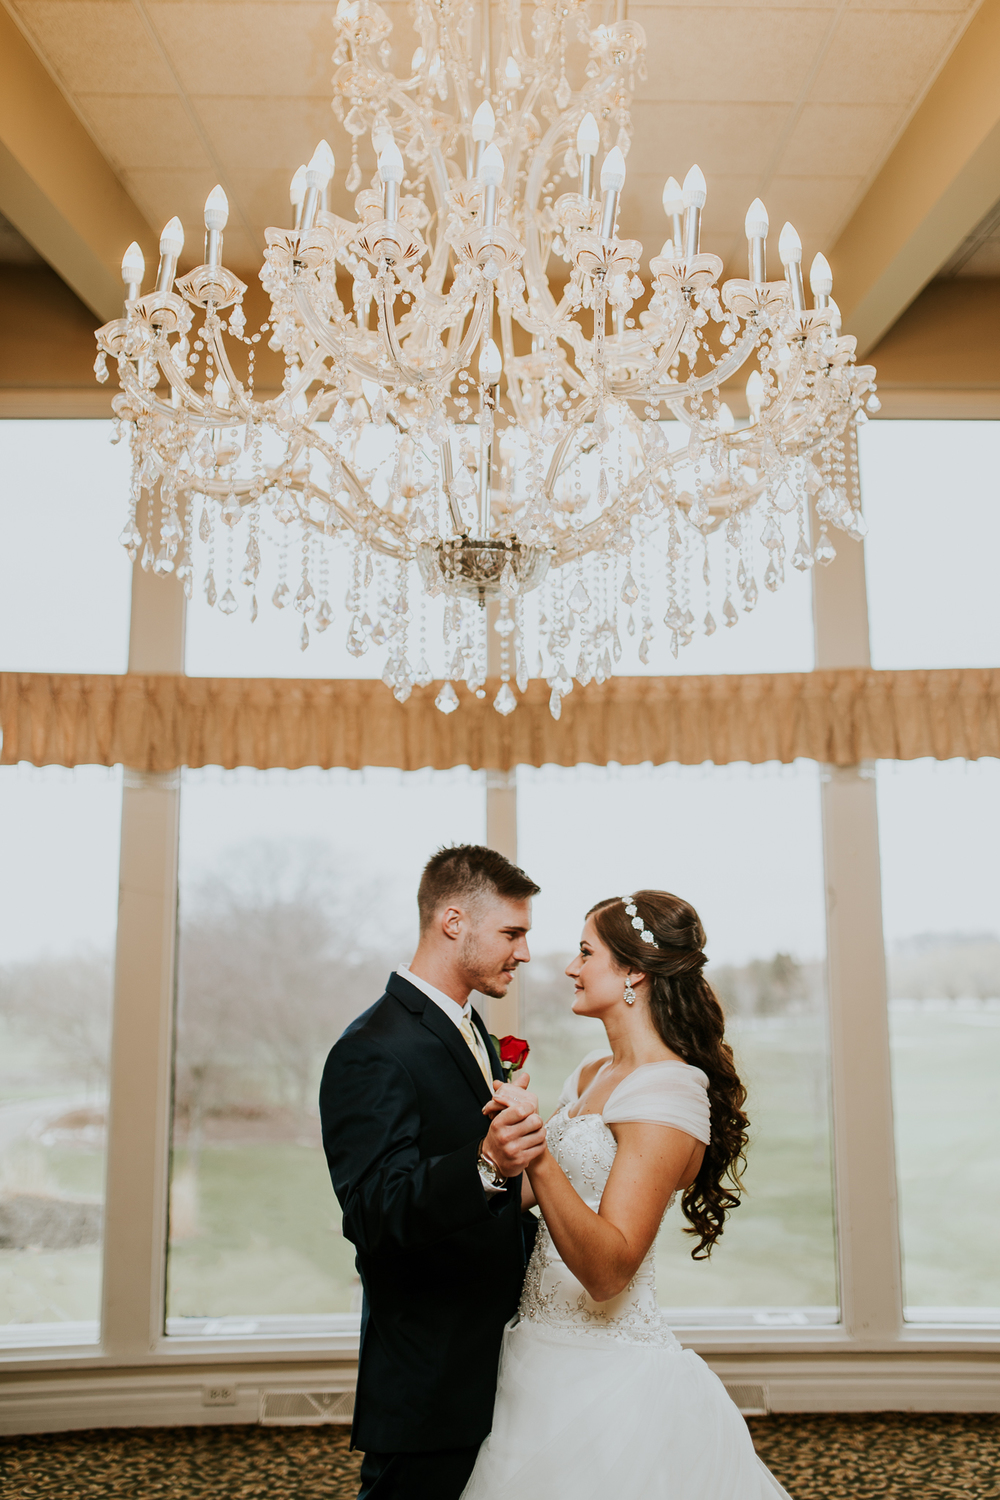 Beauty and the Beast Styled Shoot- Bloomington, IL Wedding Florist ...